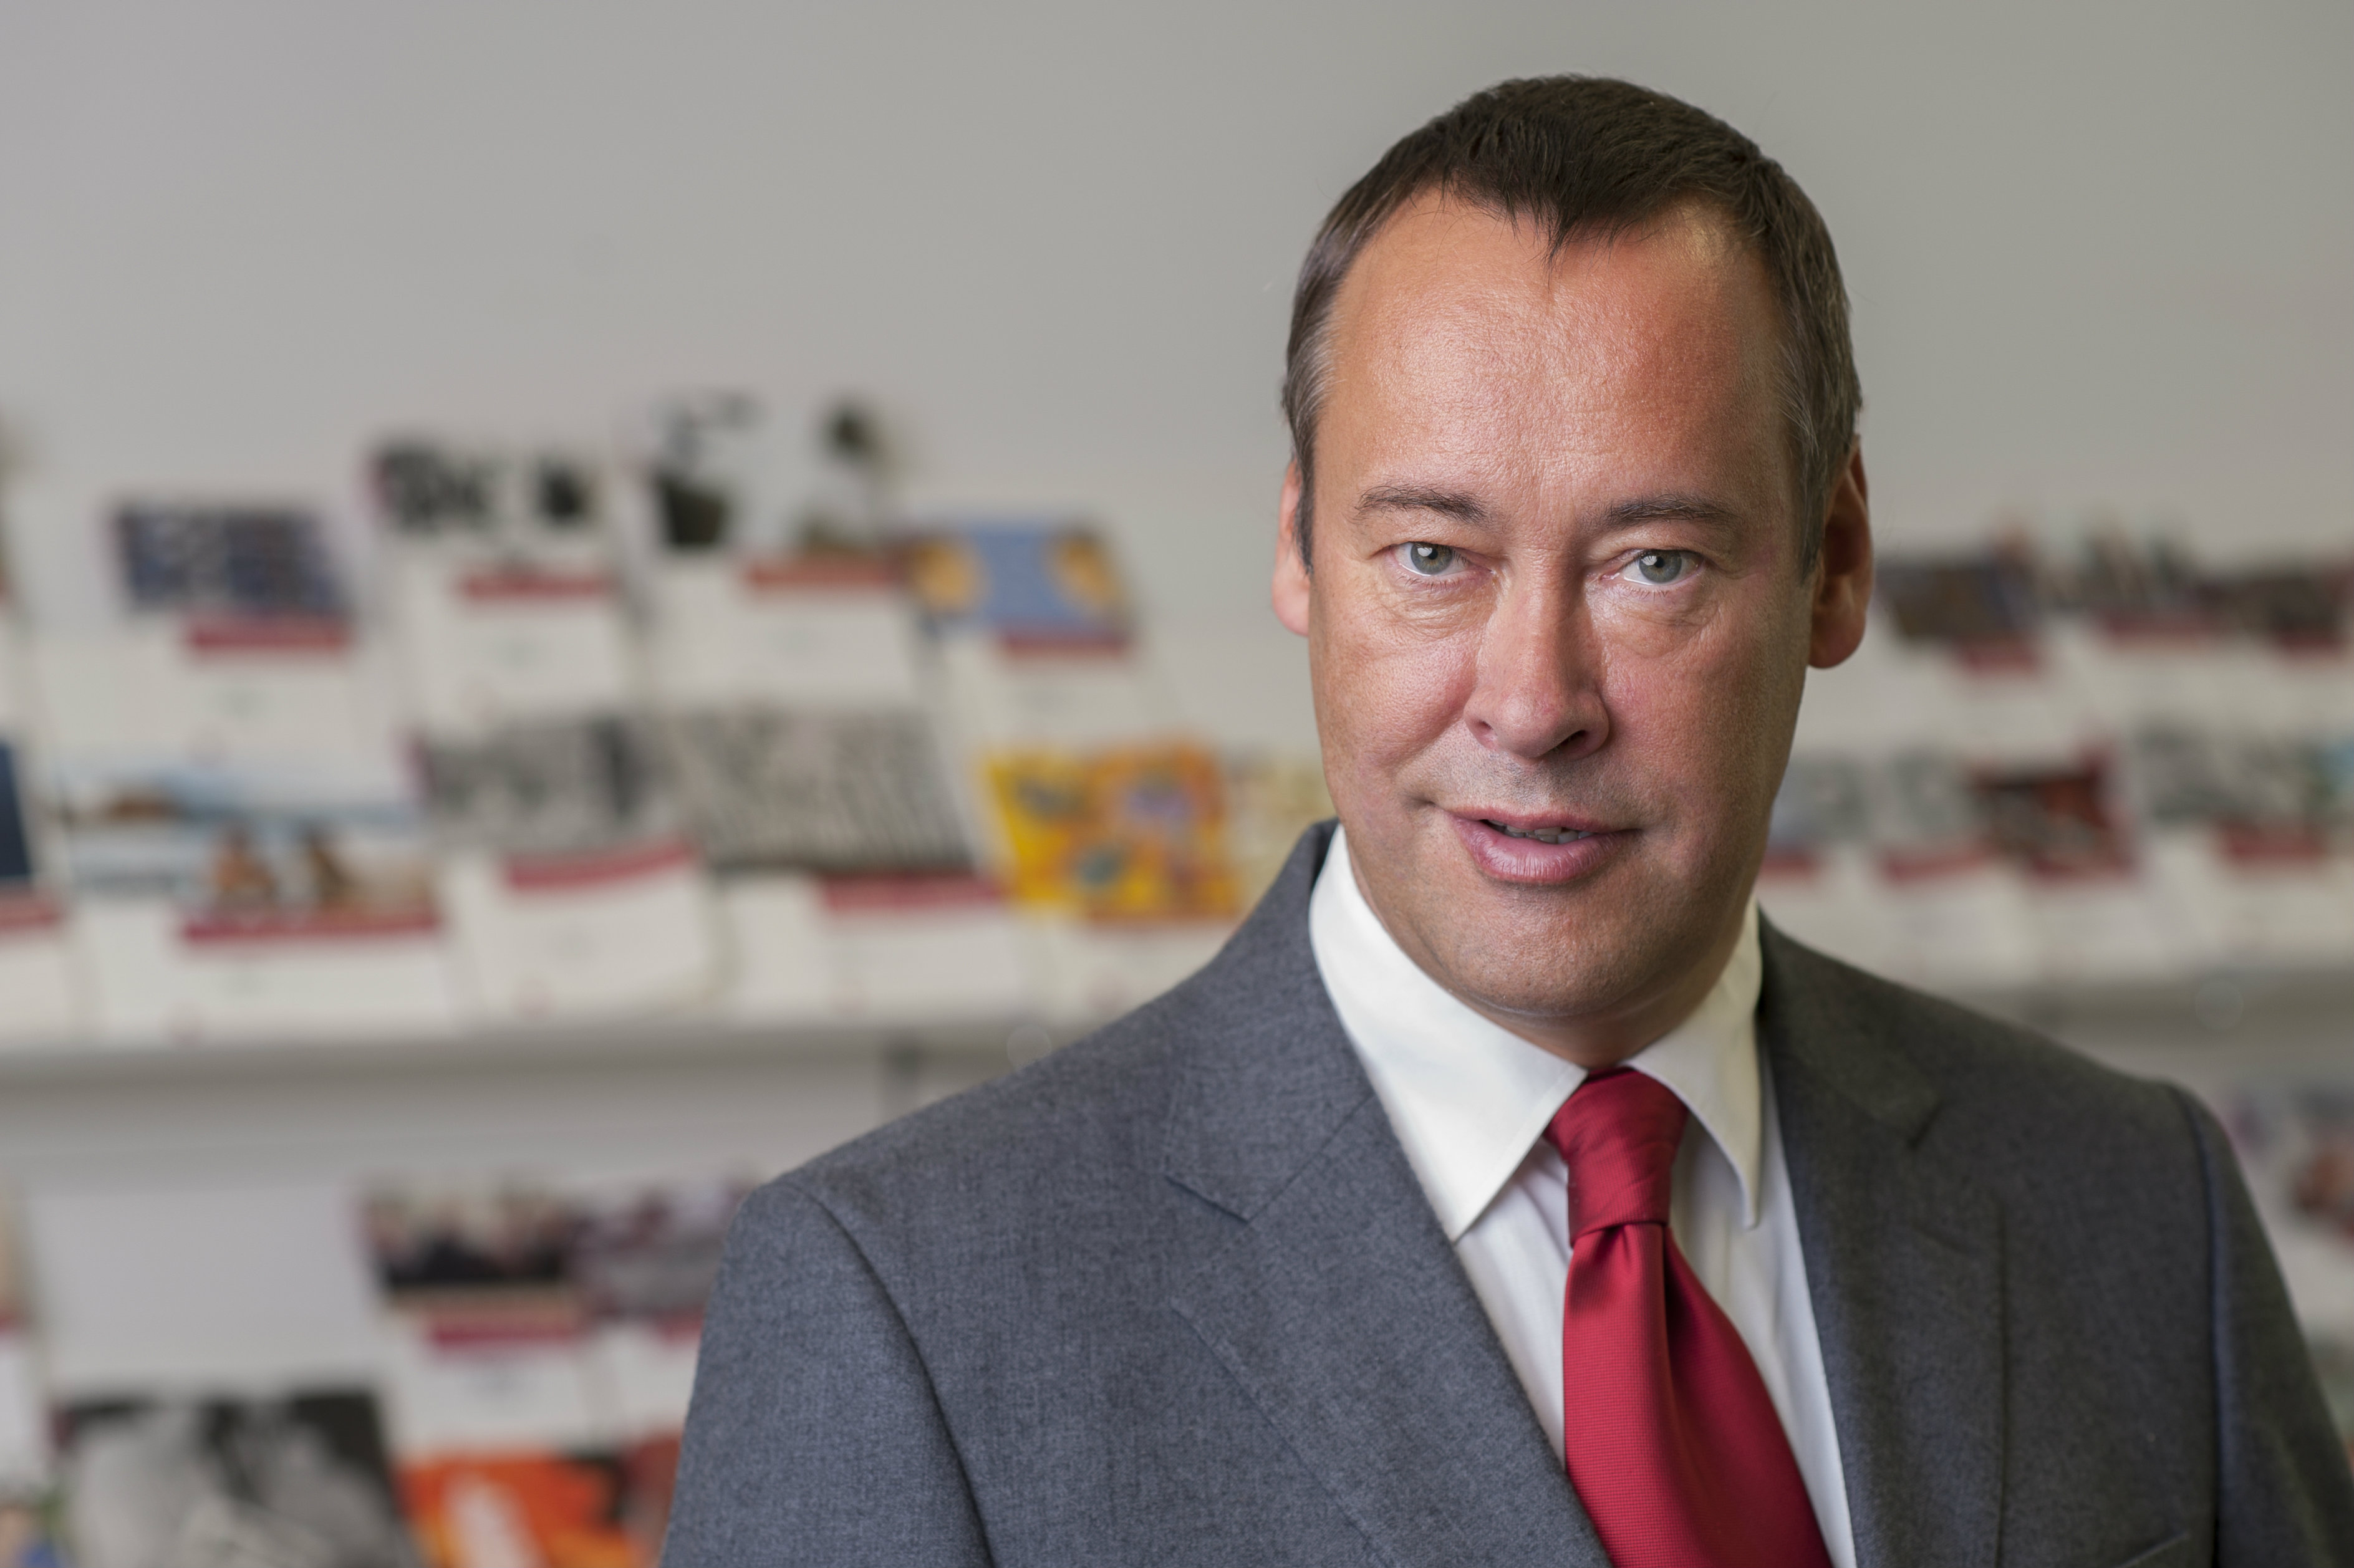 Thomas Krüger is president of the German Federal Agency for Civic Education (bpb). [bpb]